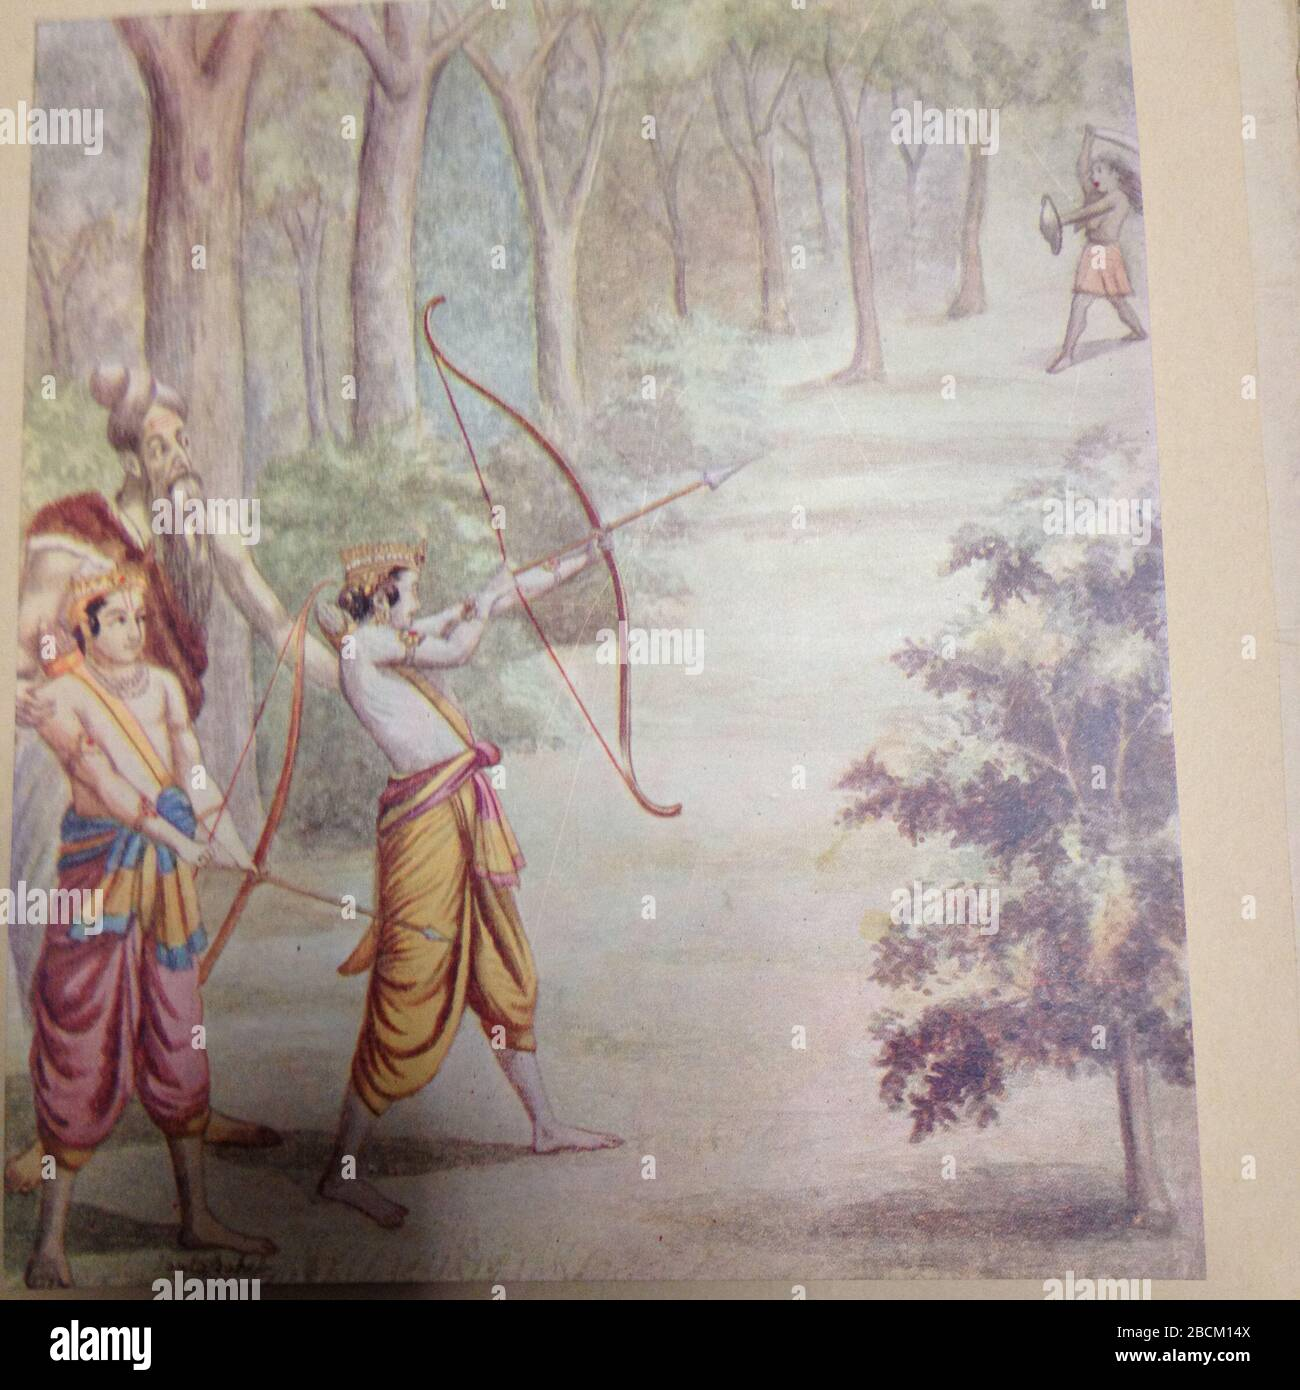 """""""Rama Killing Demon Tataka; Rama and Lakshman studied military science and other subjects under the famous guru, sage Viswamitra. After completion of their studies, they were returning to Ayodhya. While passing through forest they came across a demon called Tataka who was causing perpetual nuisance to sages in their conducting of religious duties and sacrifices. Viswamitra told Rama to kill Tataka. Rama hesitated to kill a woman. The guru convinced him that social menace in any form or gender was to be controlled and it was dharma (duty) of a Kshatriya to eradicate evil. With one arrow Rama di Stock Photo"""